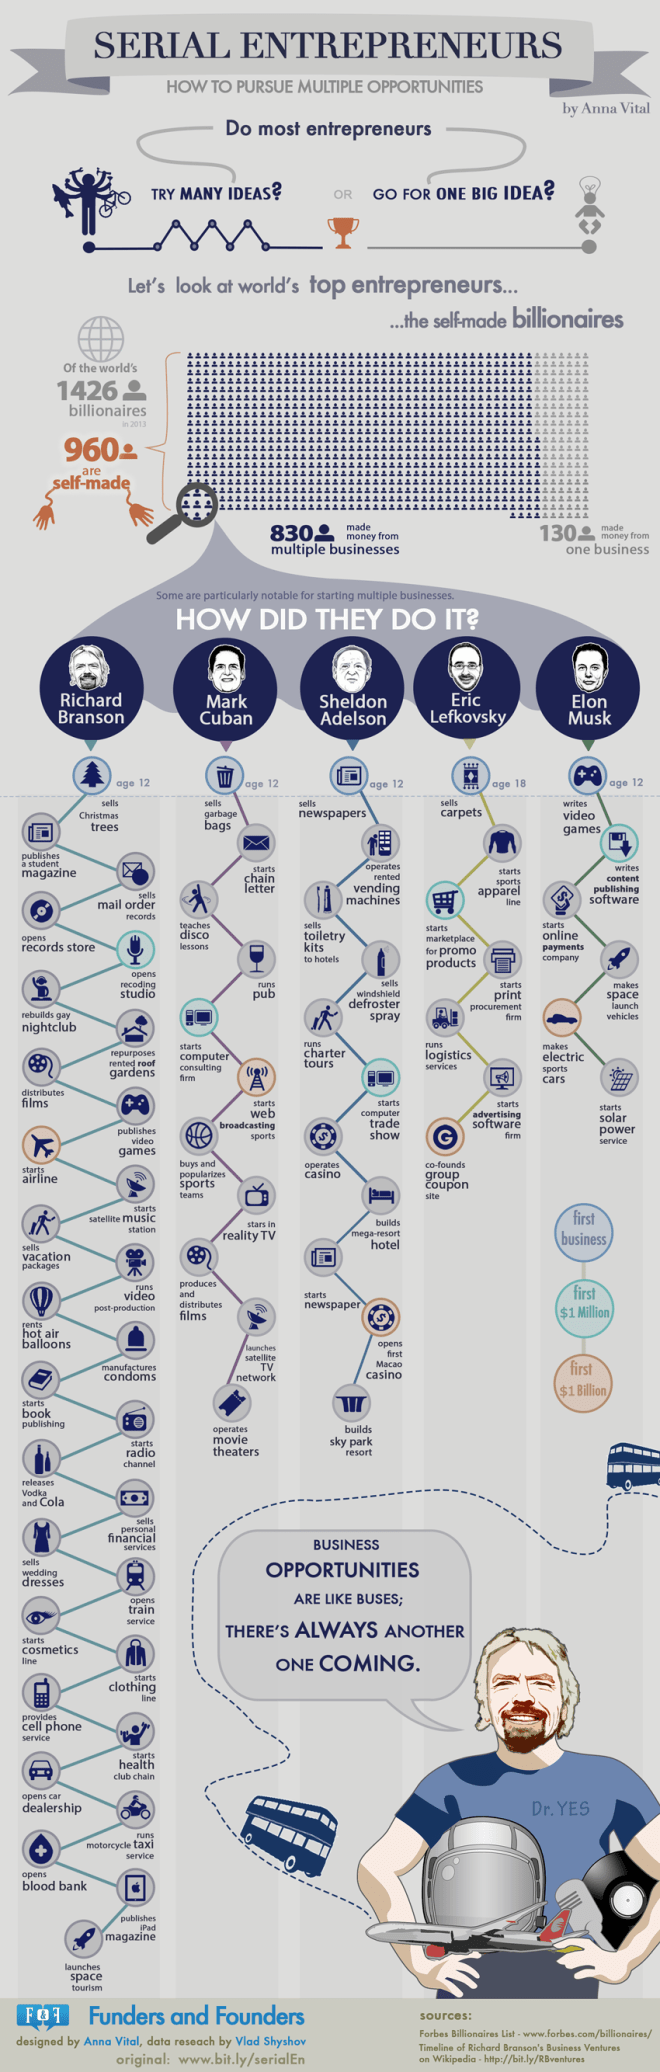 Career Paths of 5 Self-made Billionaires (Infographic)